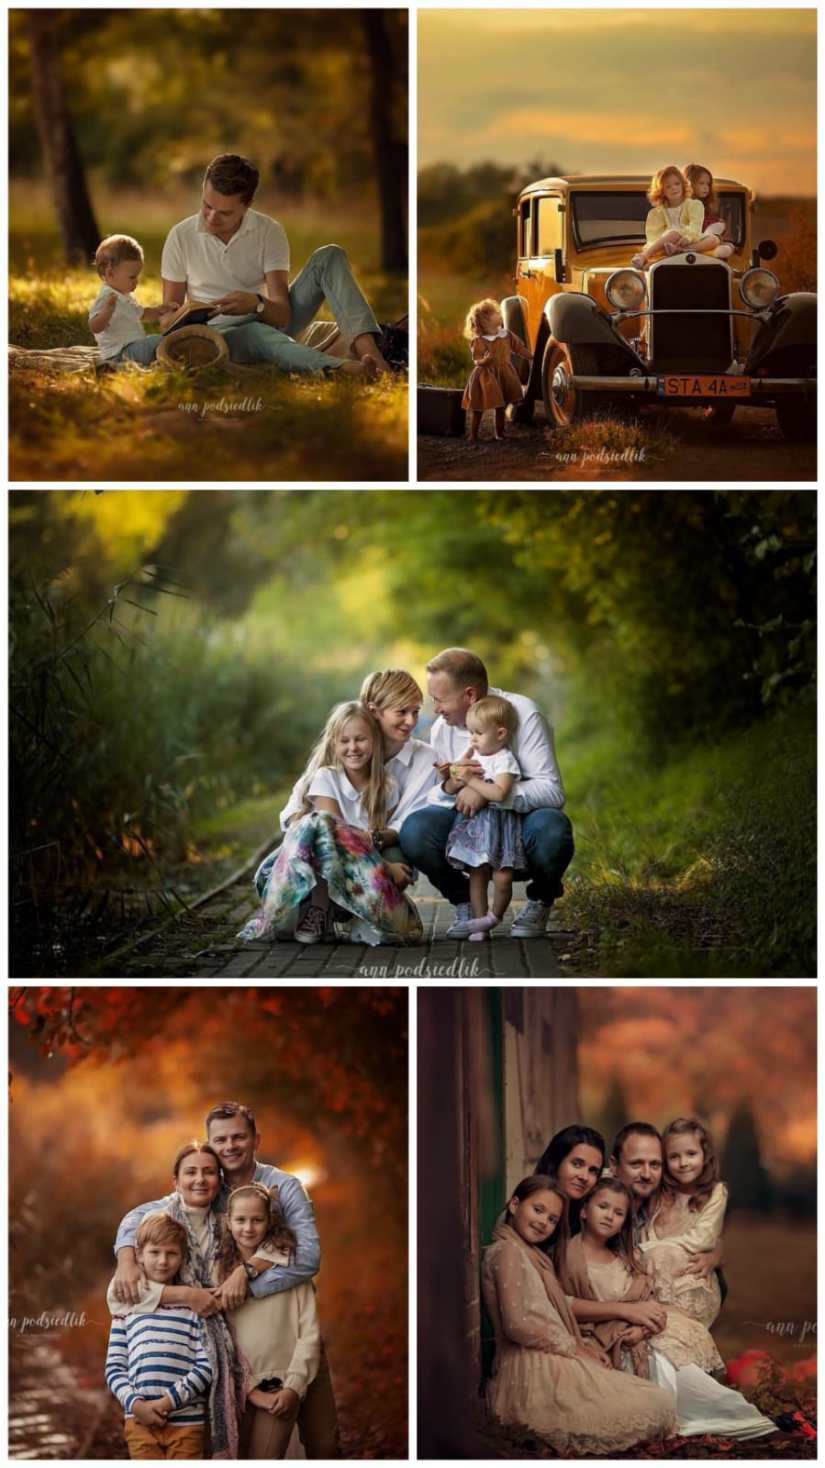 Artistic Family Photos ideas